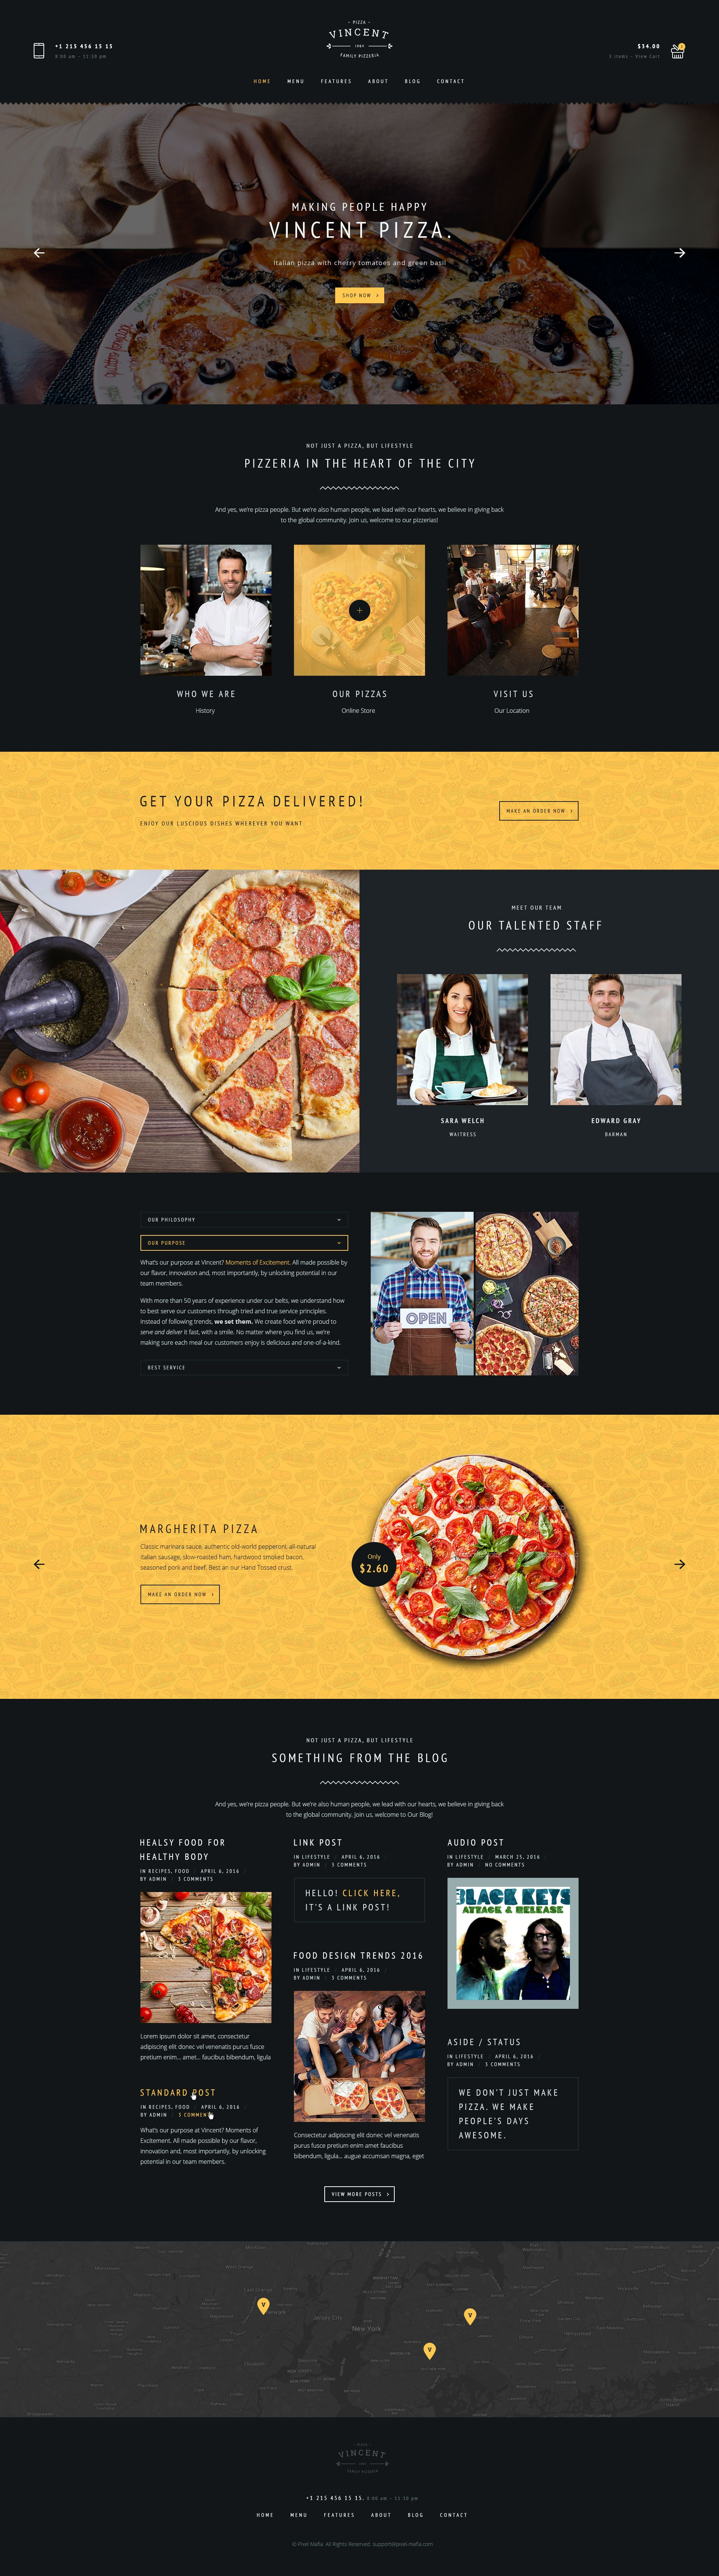 Vincent Restaurant And Online Ordering Ecommerce Psd